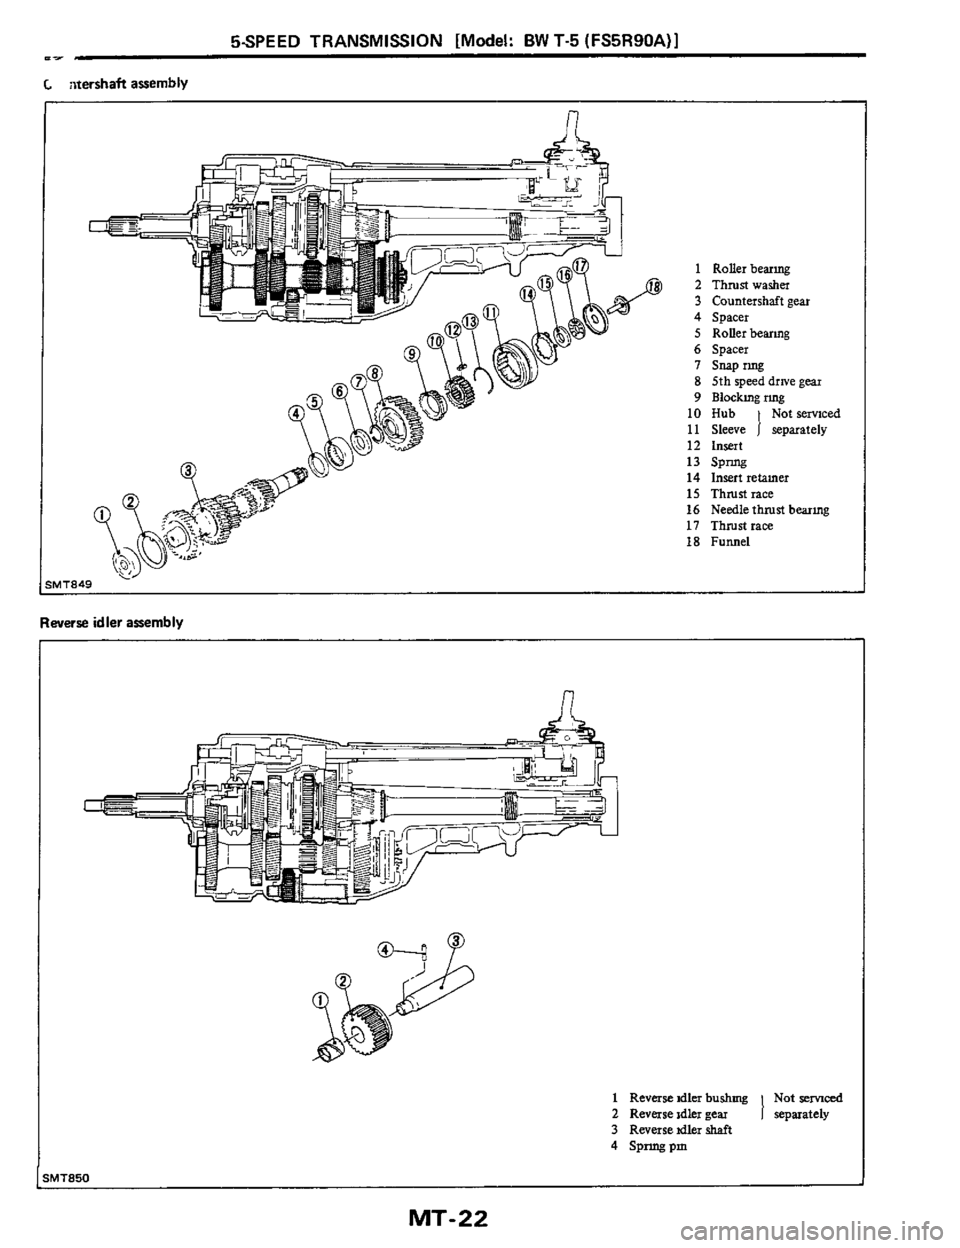 NISSAN 300ZX 1984 Z31 Manual Transmission Workshop Manual